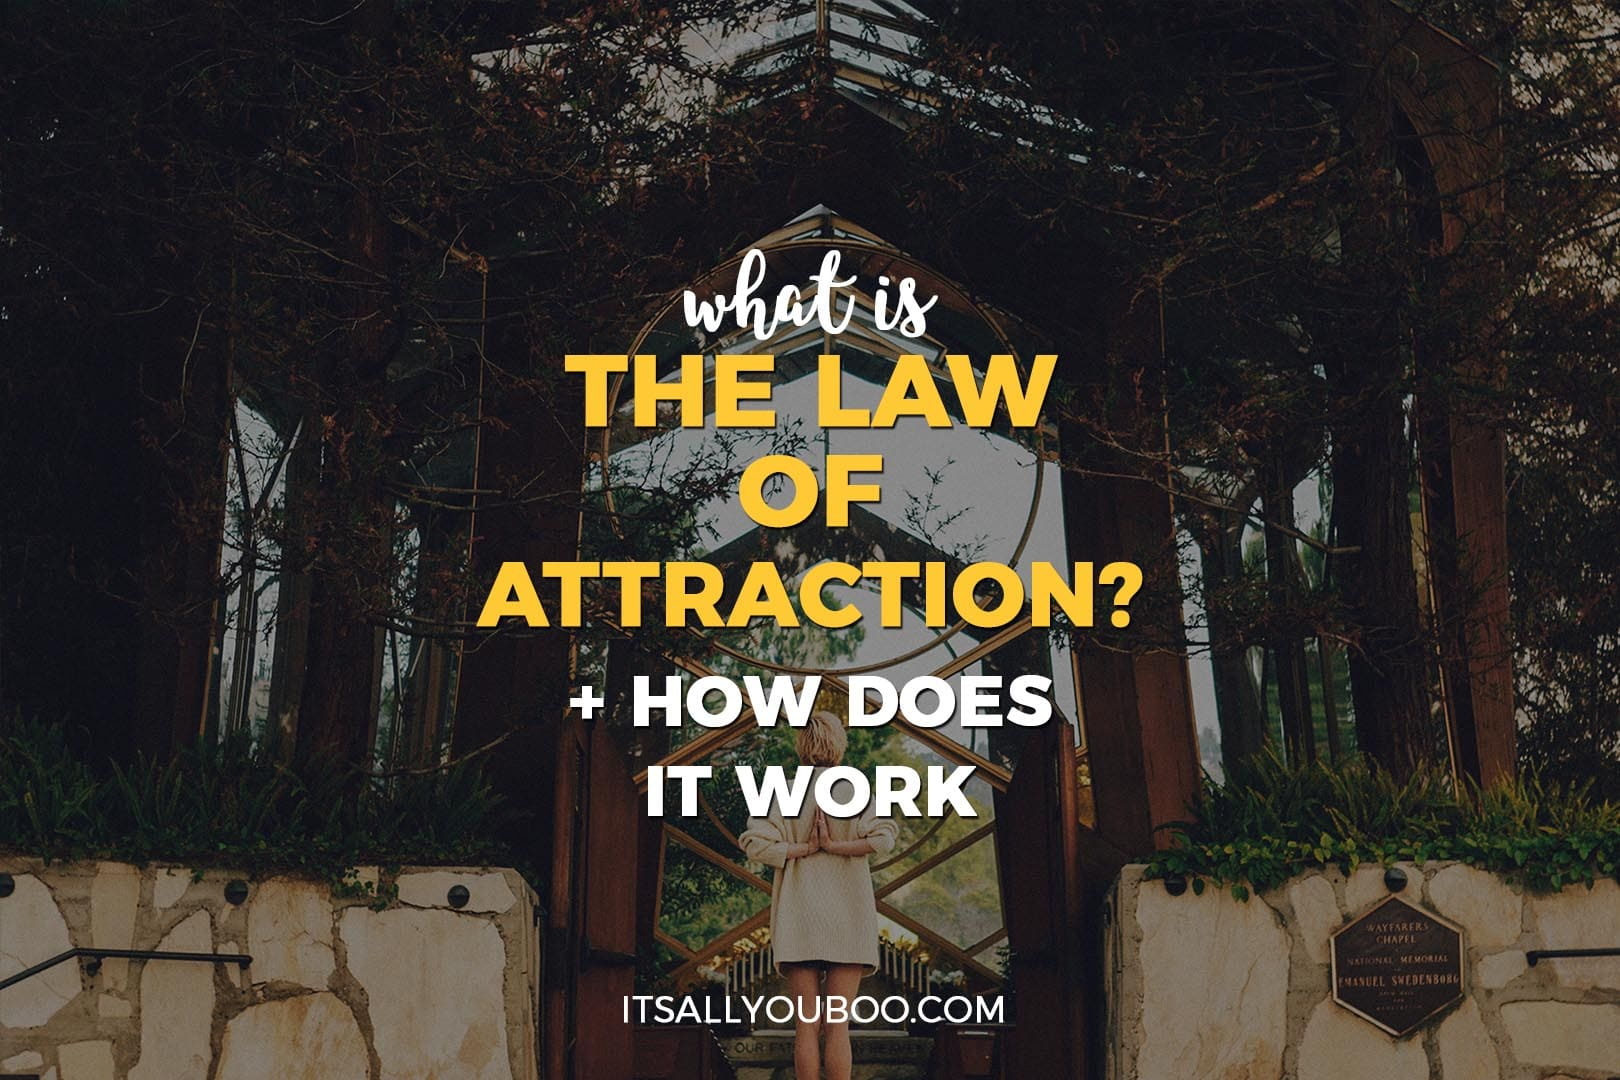 What is the Law of Attraction?